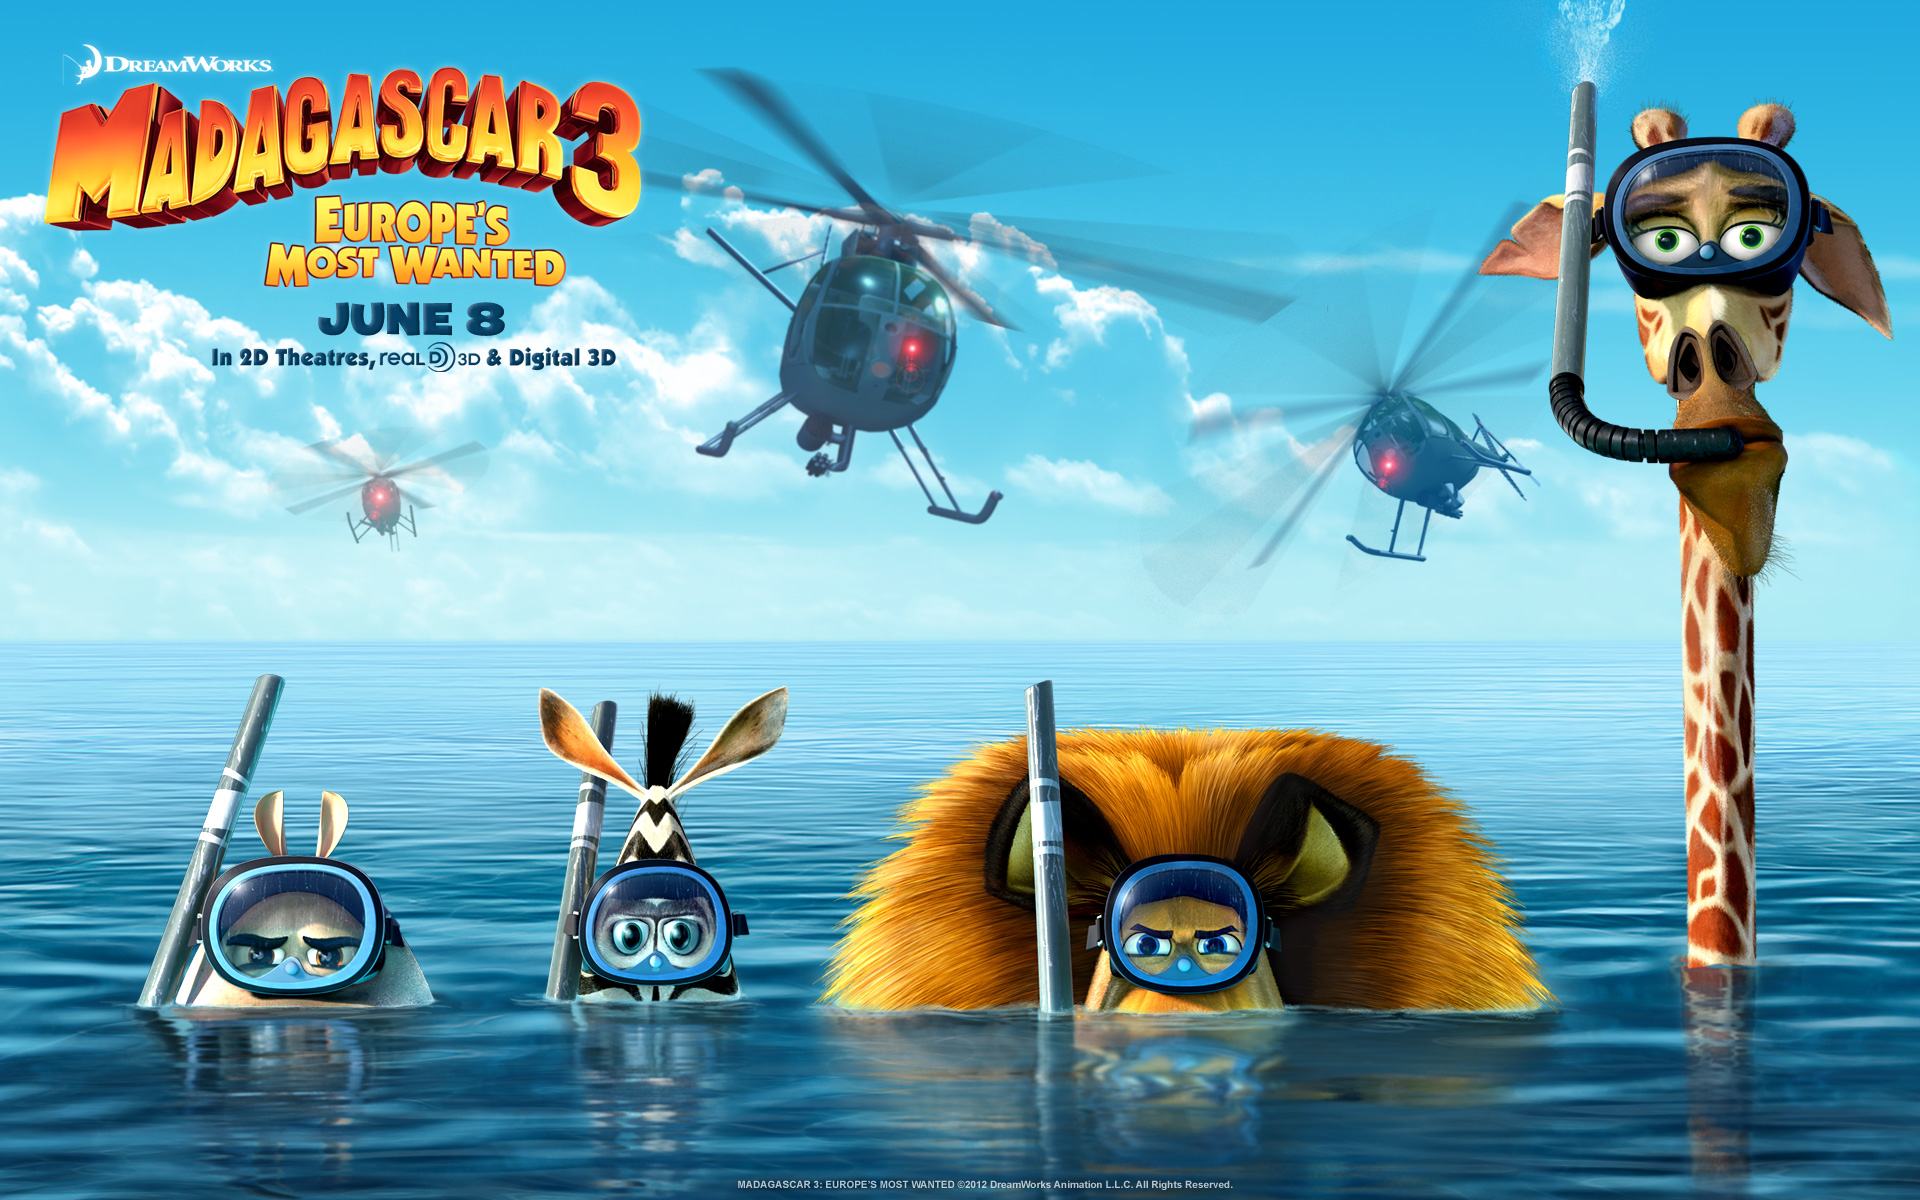 Madagascar 3 2012 Movie wallpaper